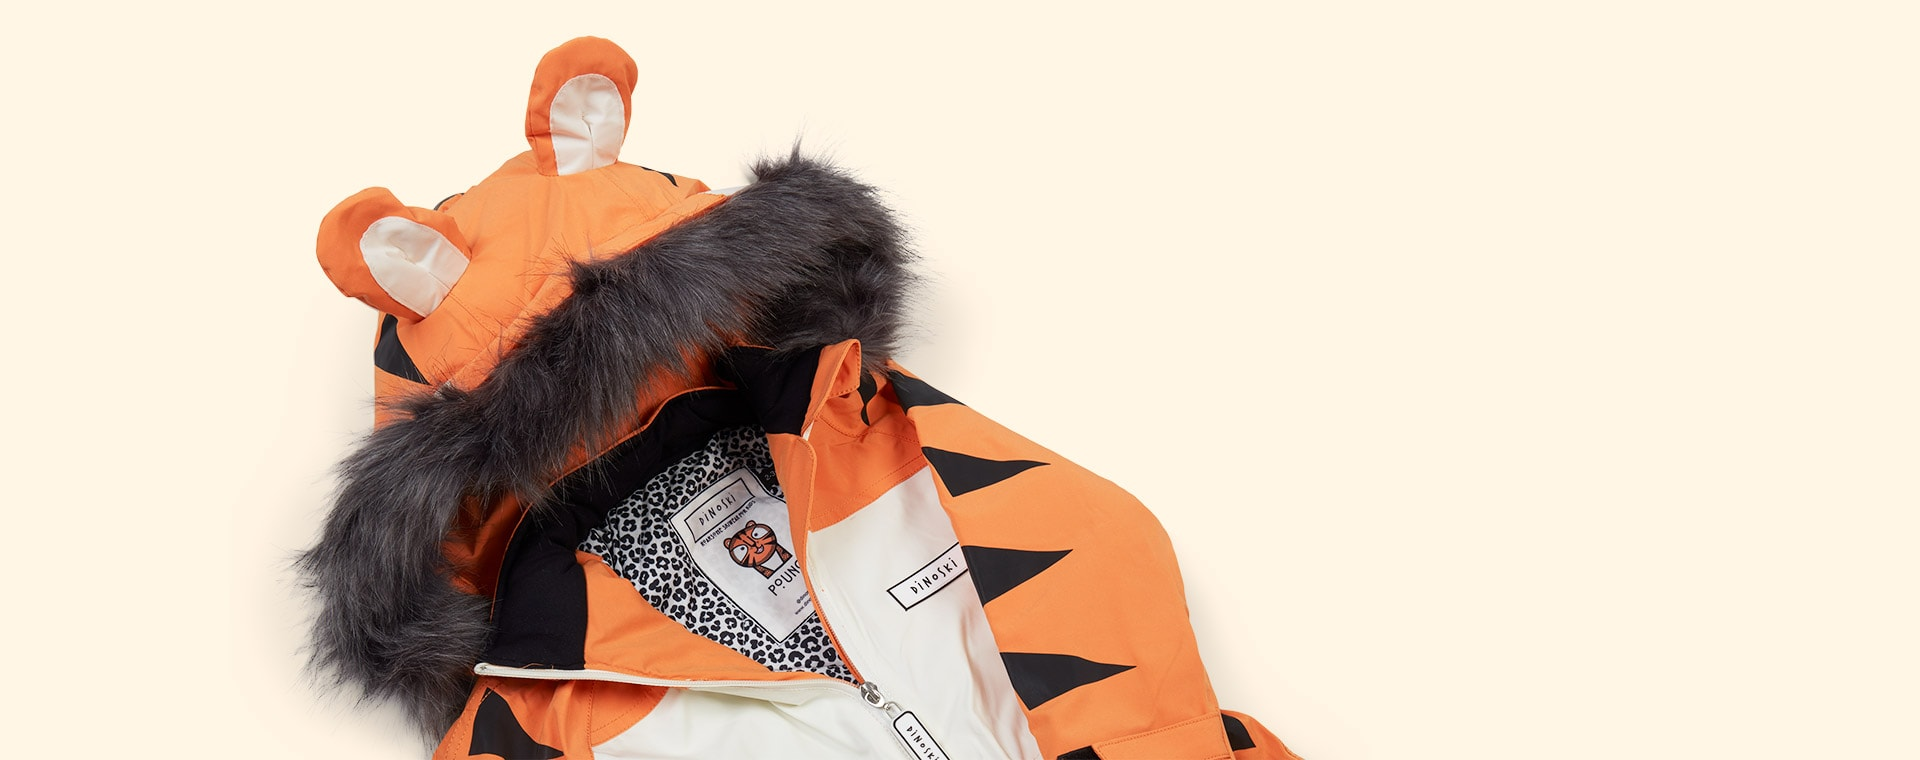 Pounce dinoski Winter Suit